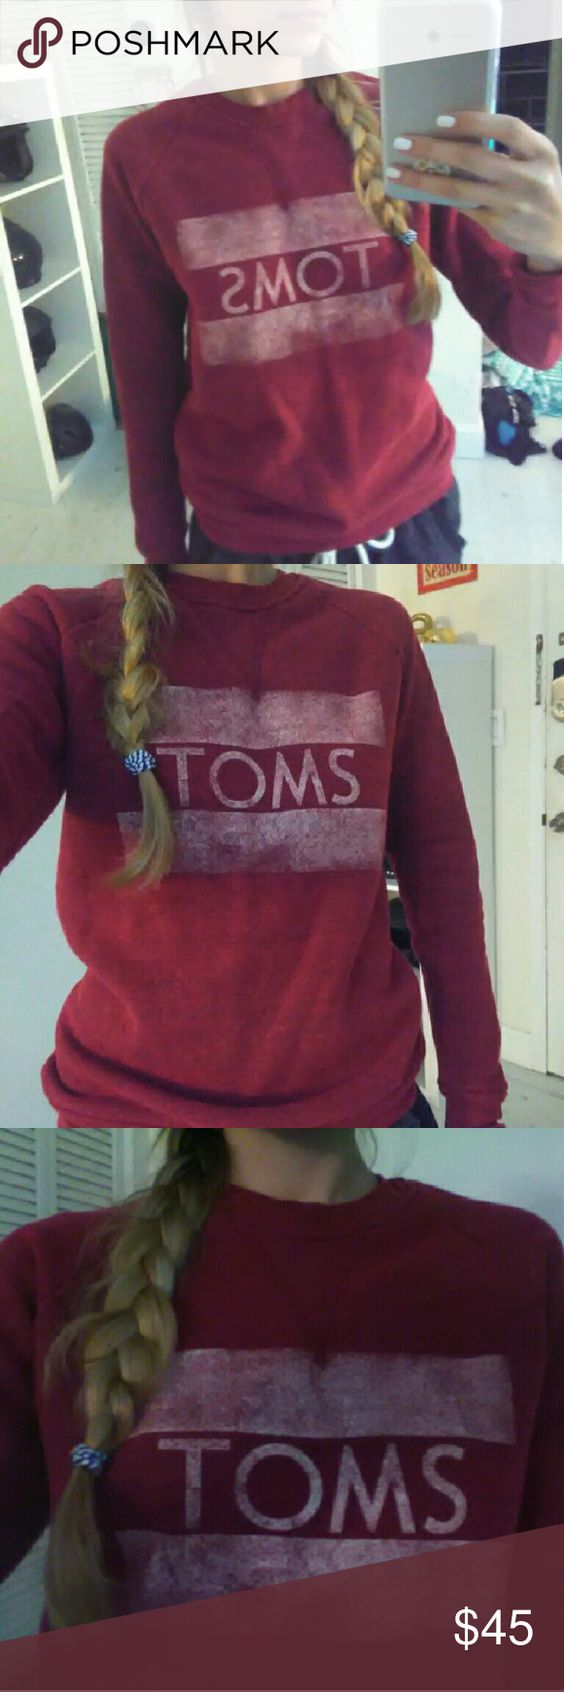 TOMS not so ugly Christmas sweater xmas maroon red Burgundy maroon toms sweatshirt, size xs TOMS Sweaters Crew & Scoop Necks